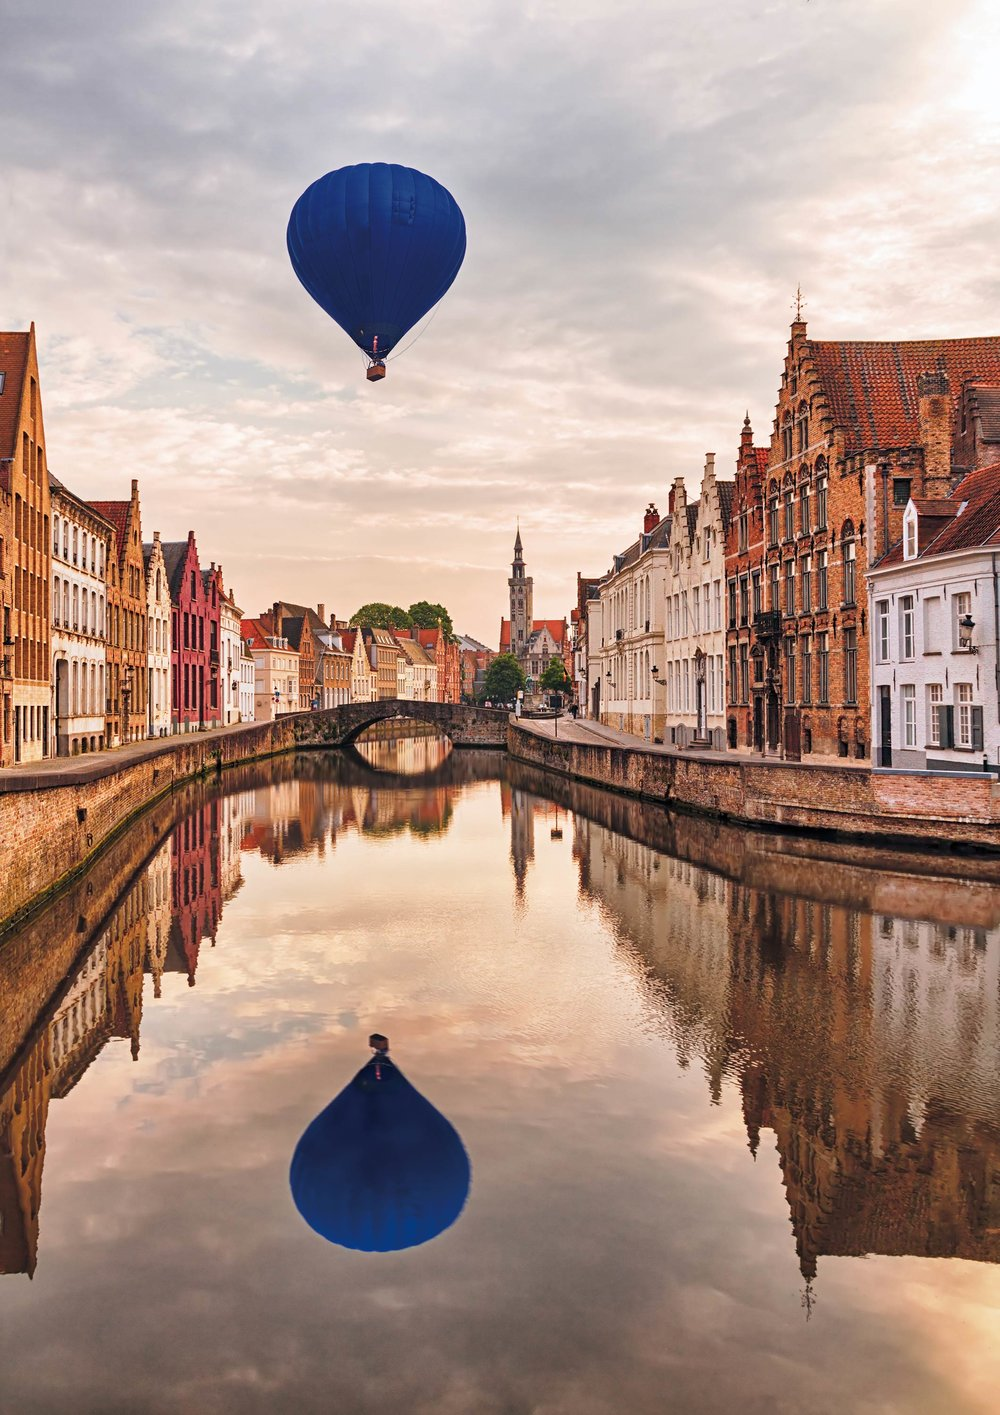 A romantic hot-air-balloon ride over the canals at sunset. irakite / Shutterstock.com